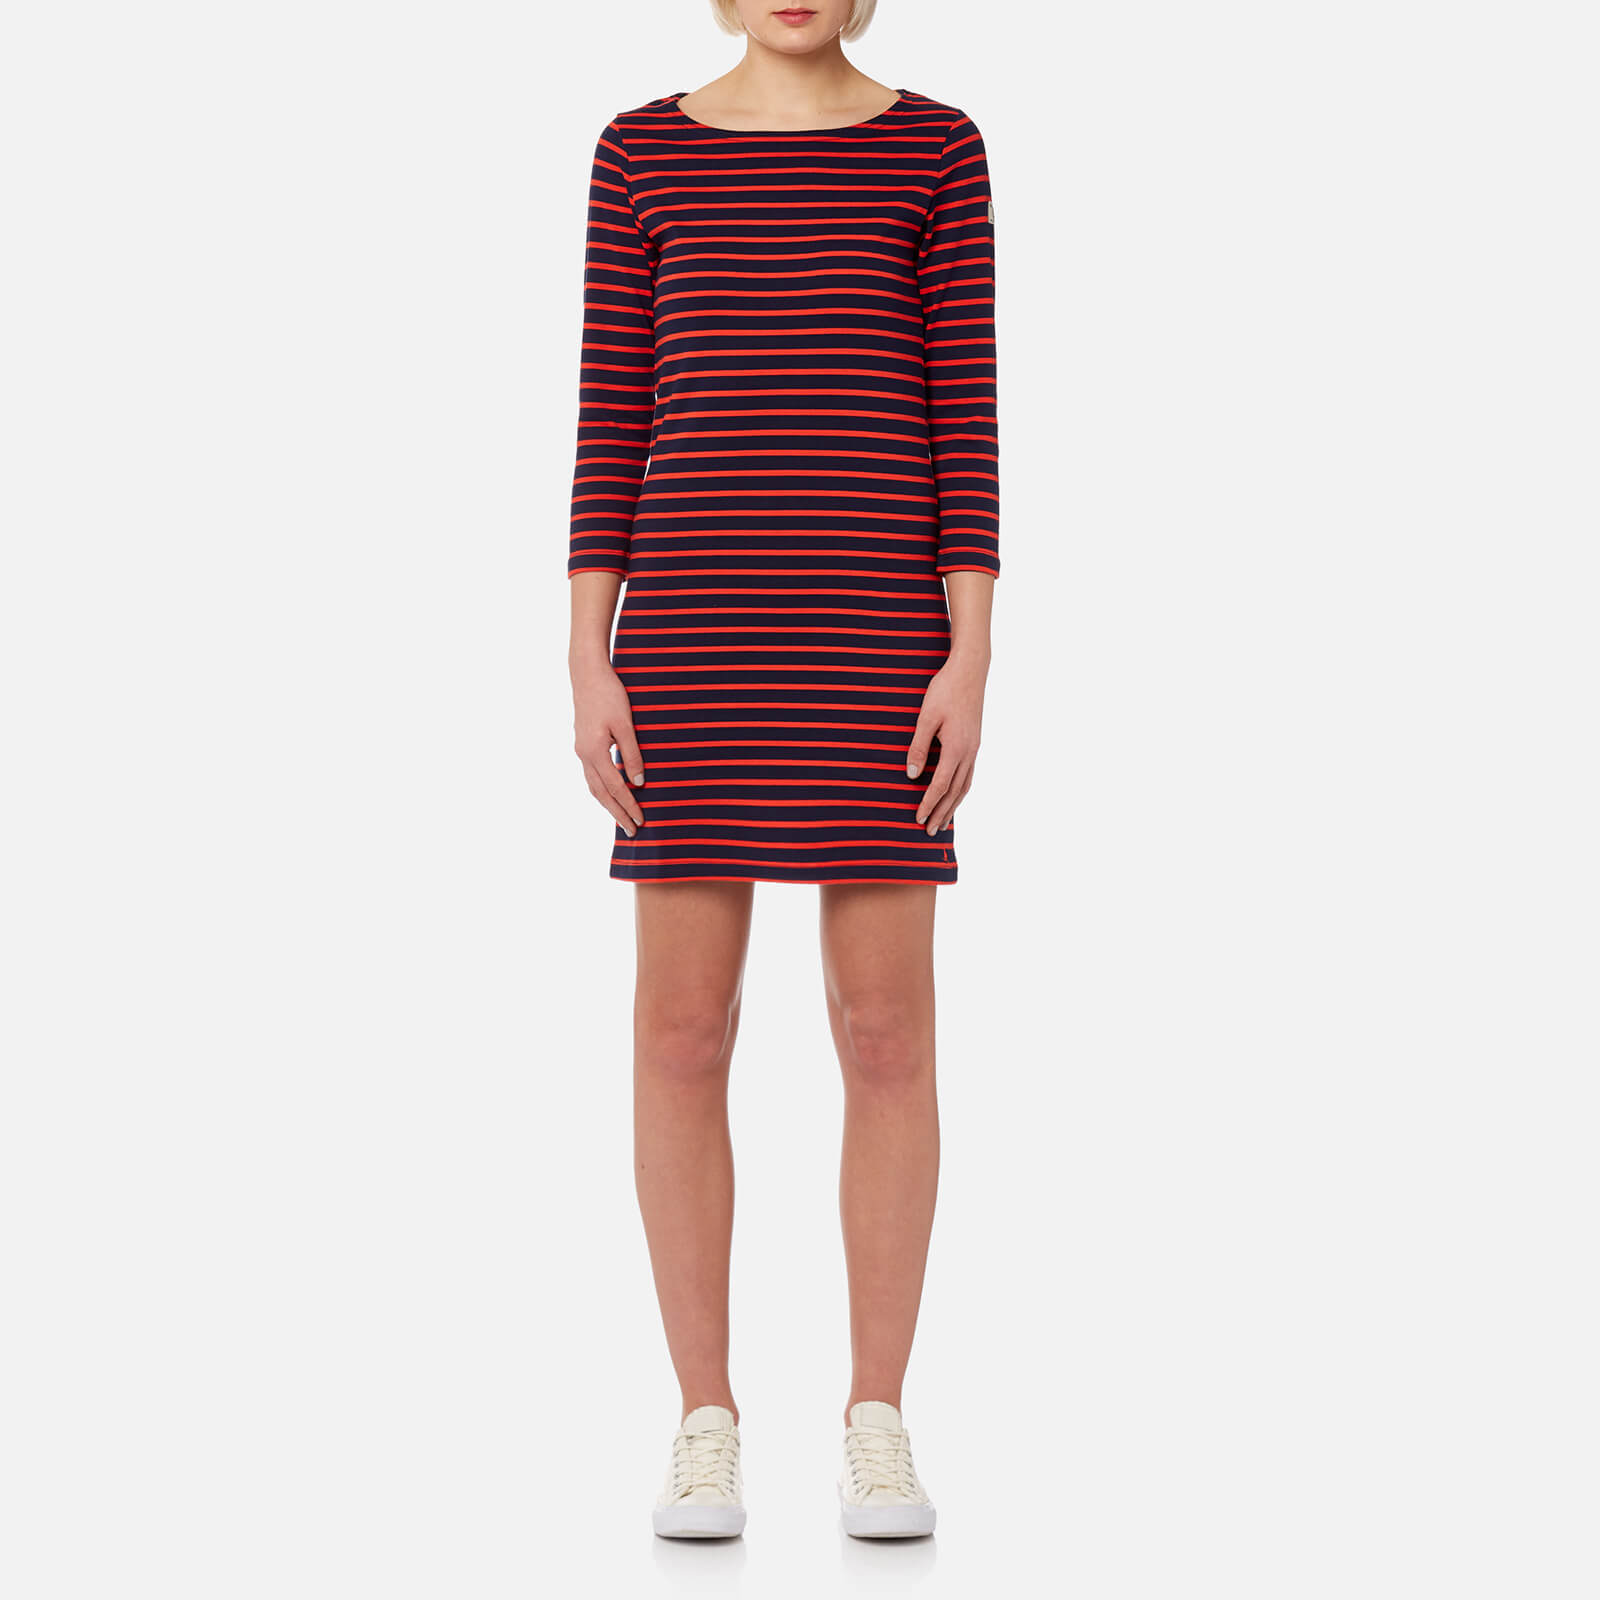 11a7a6a84851 Joules Women's Riviera 3/4 Sleeve Jersey Dress - Navy Red Stripe Womens  Clothing | TheHut.com